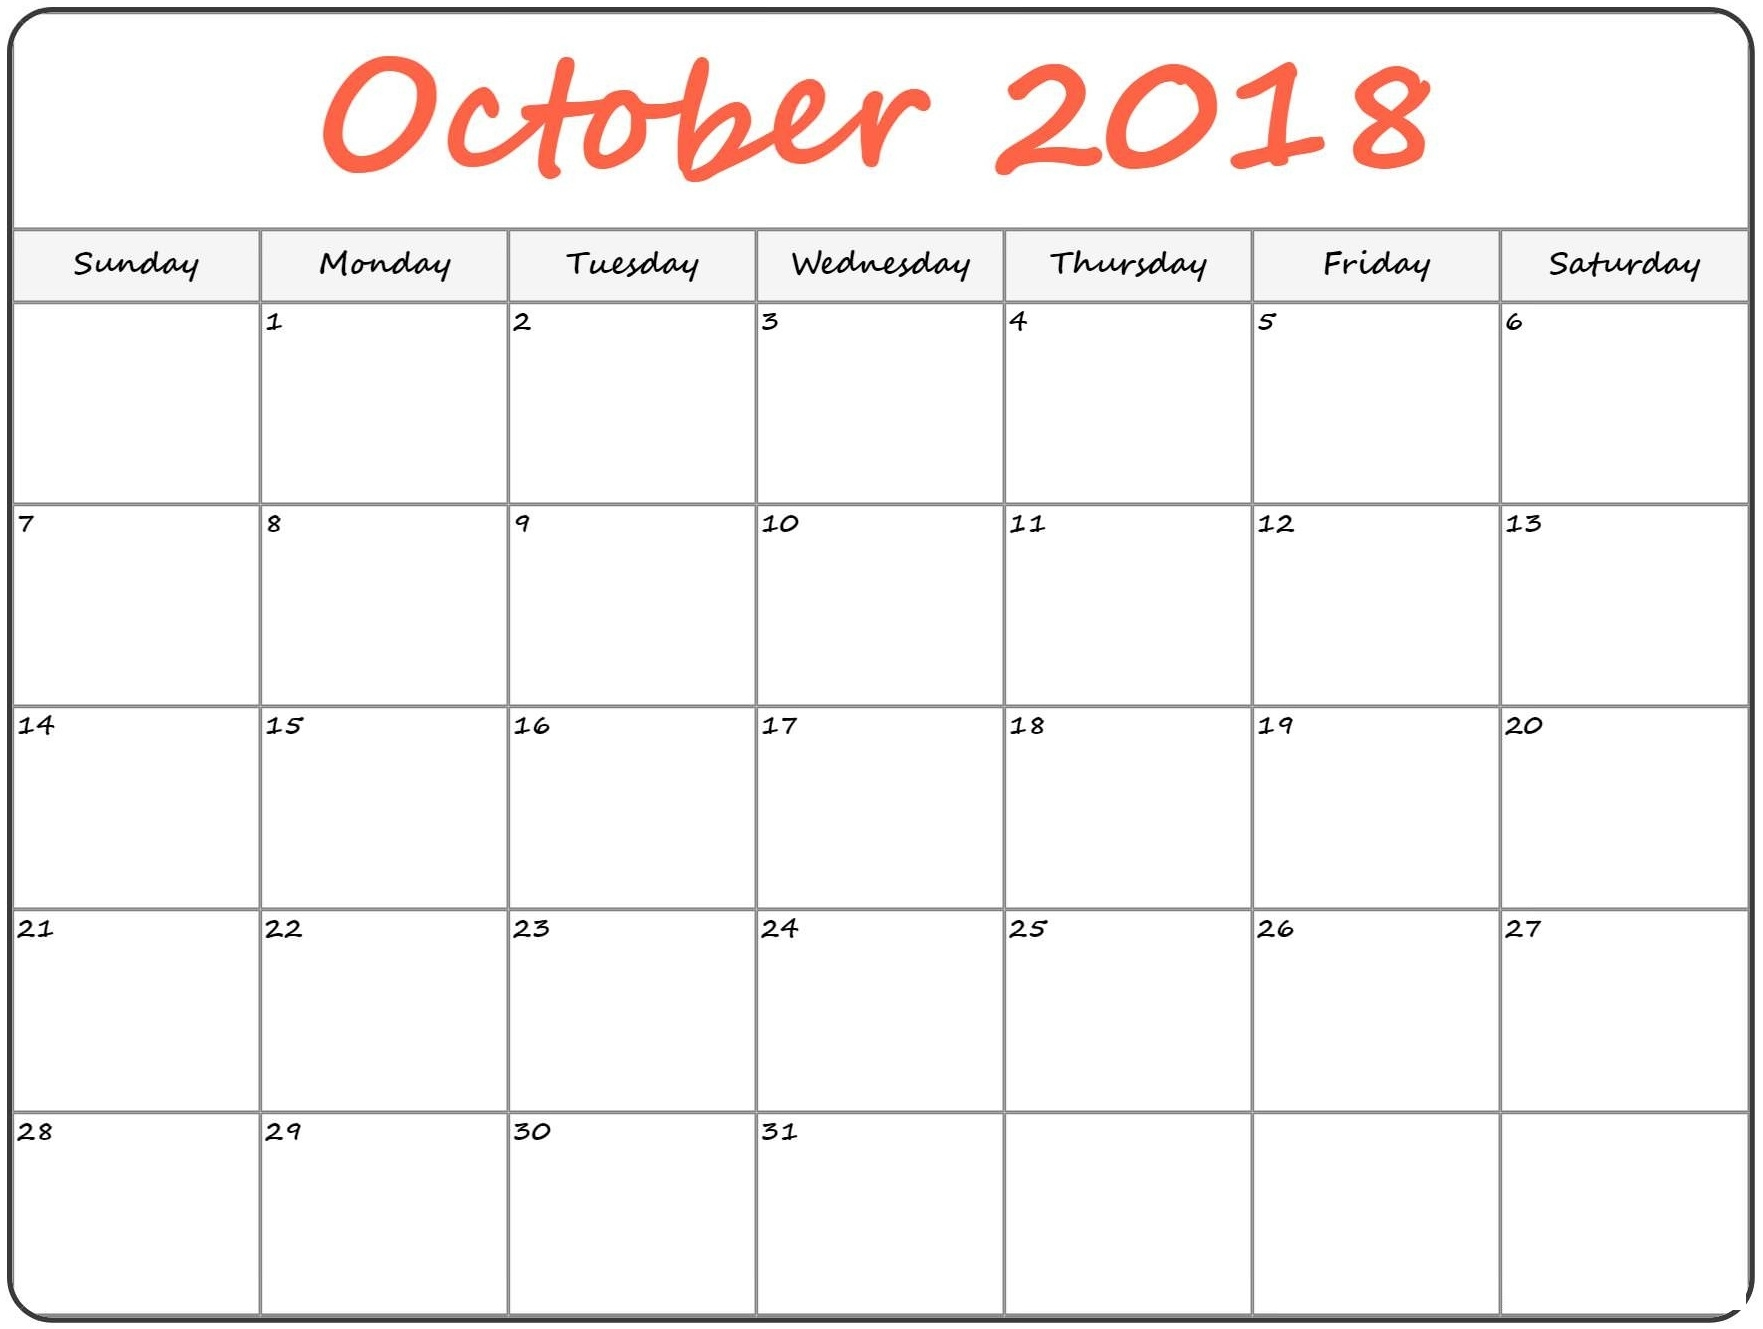 free template of october 2018 calendar july 2018 calendar October 2018 Calendar Printable Template erdferdf